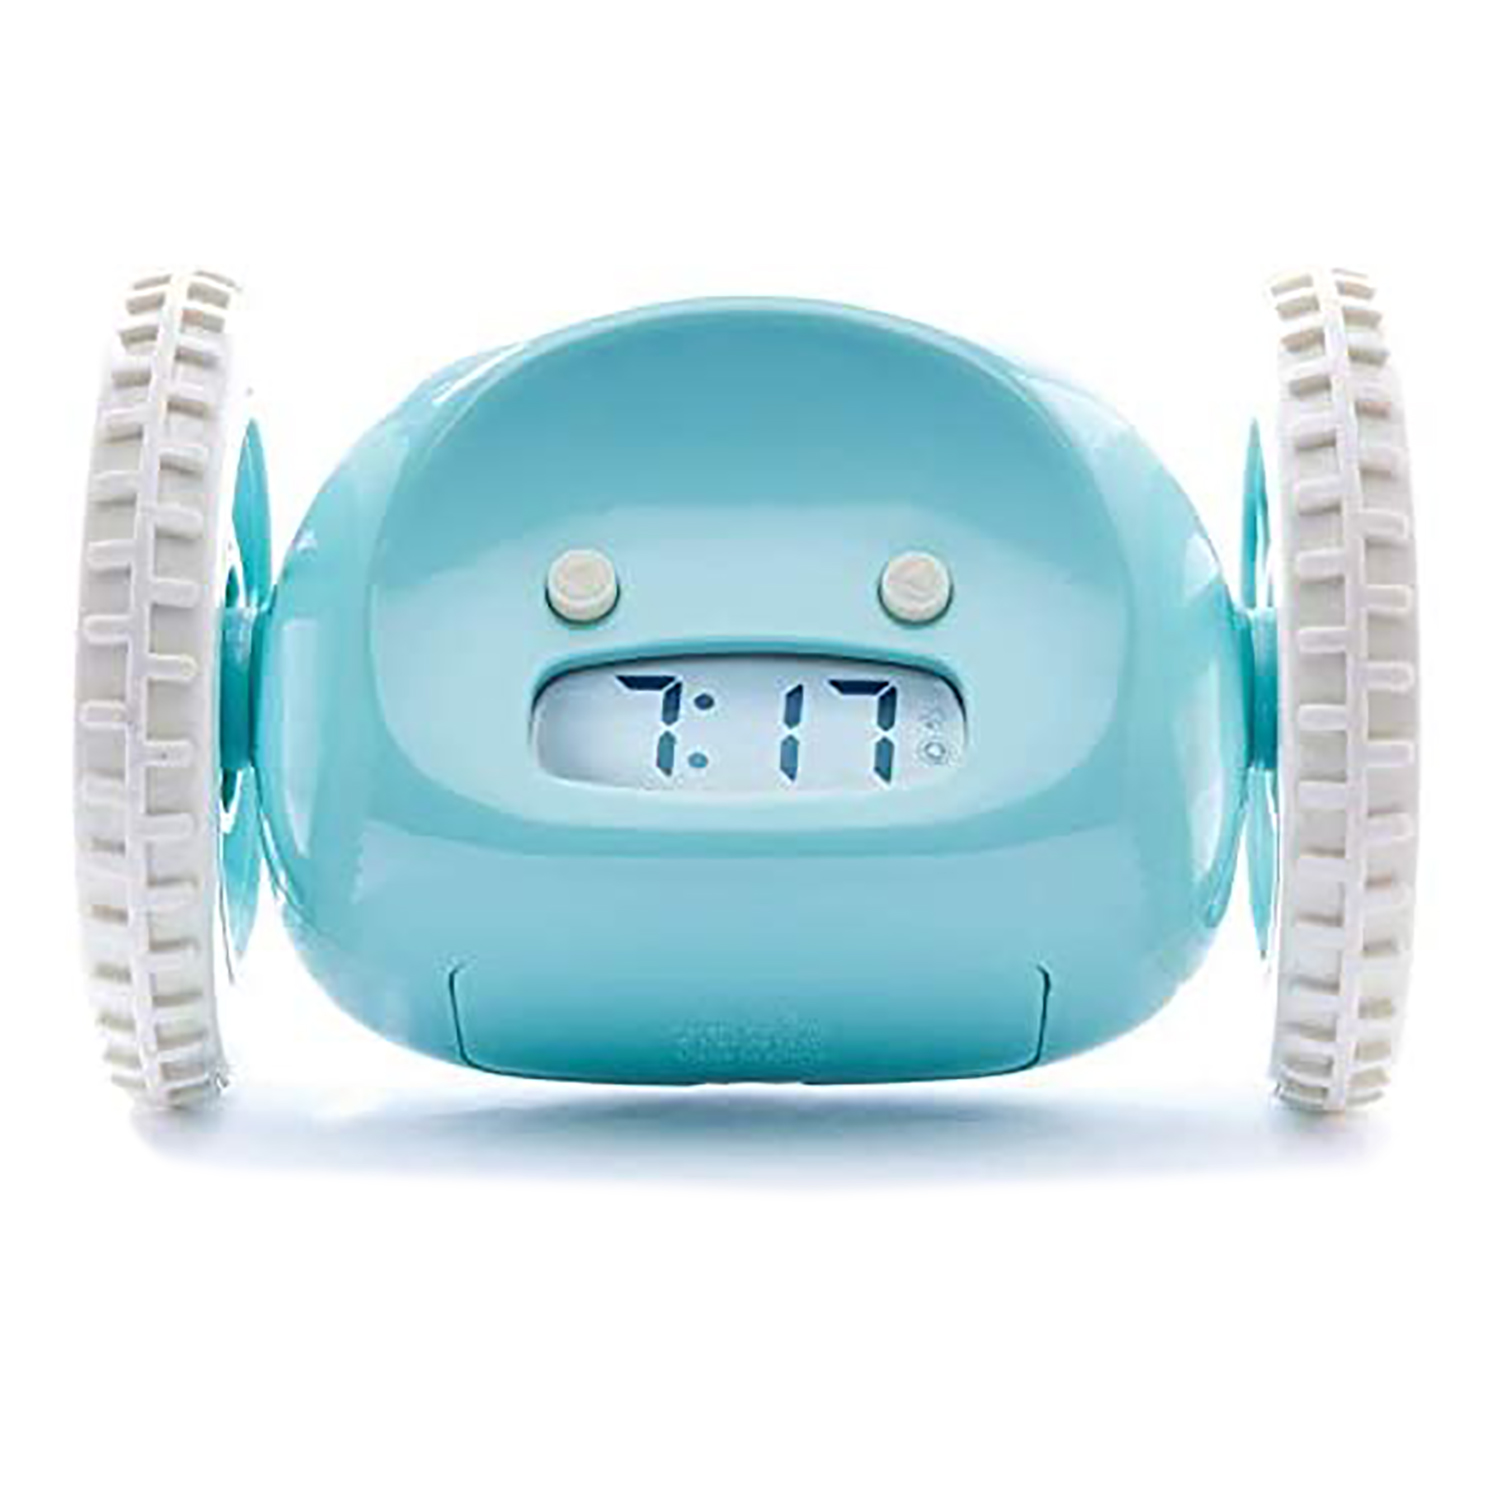 clocky alarm clock wheels